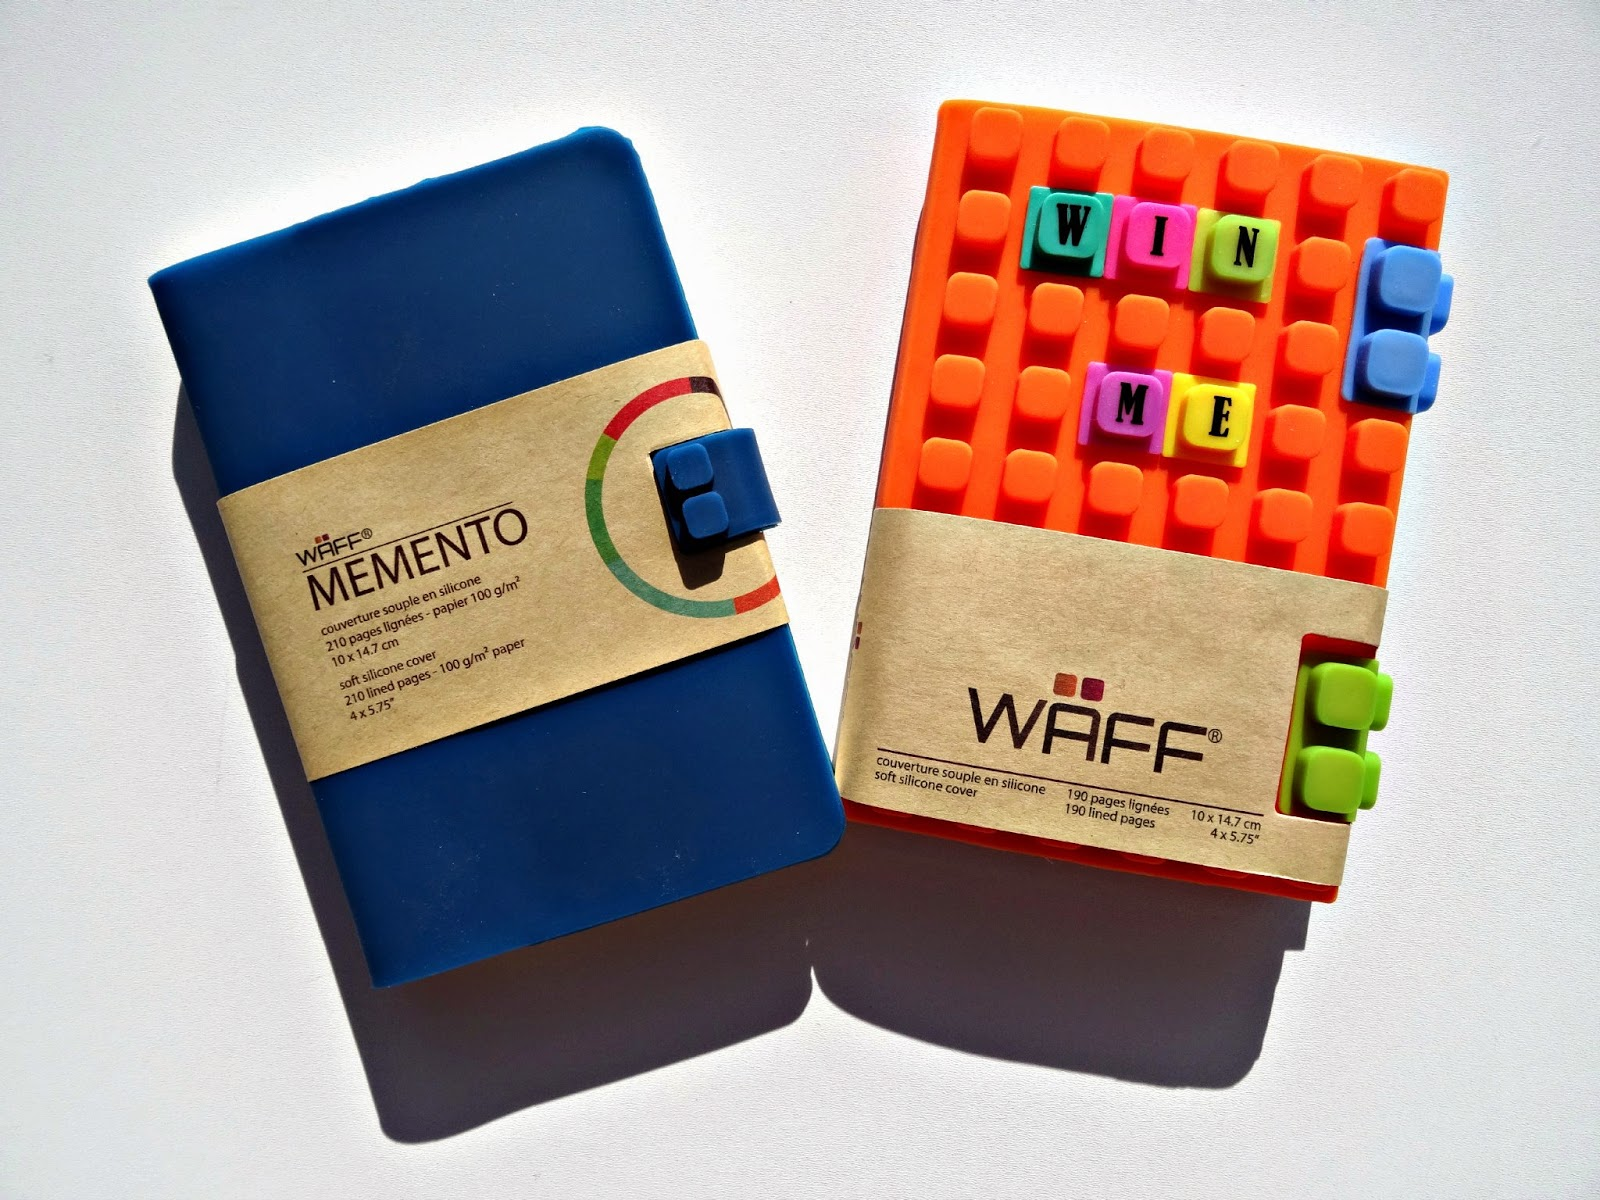 WAFF stationery